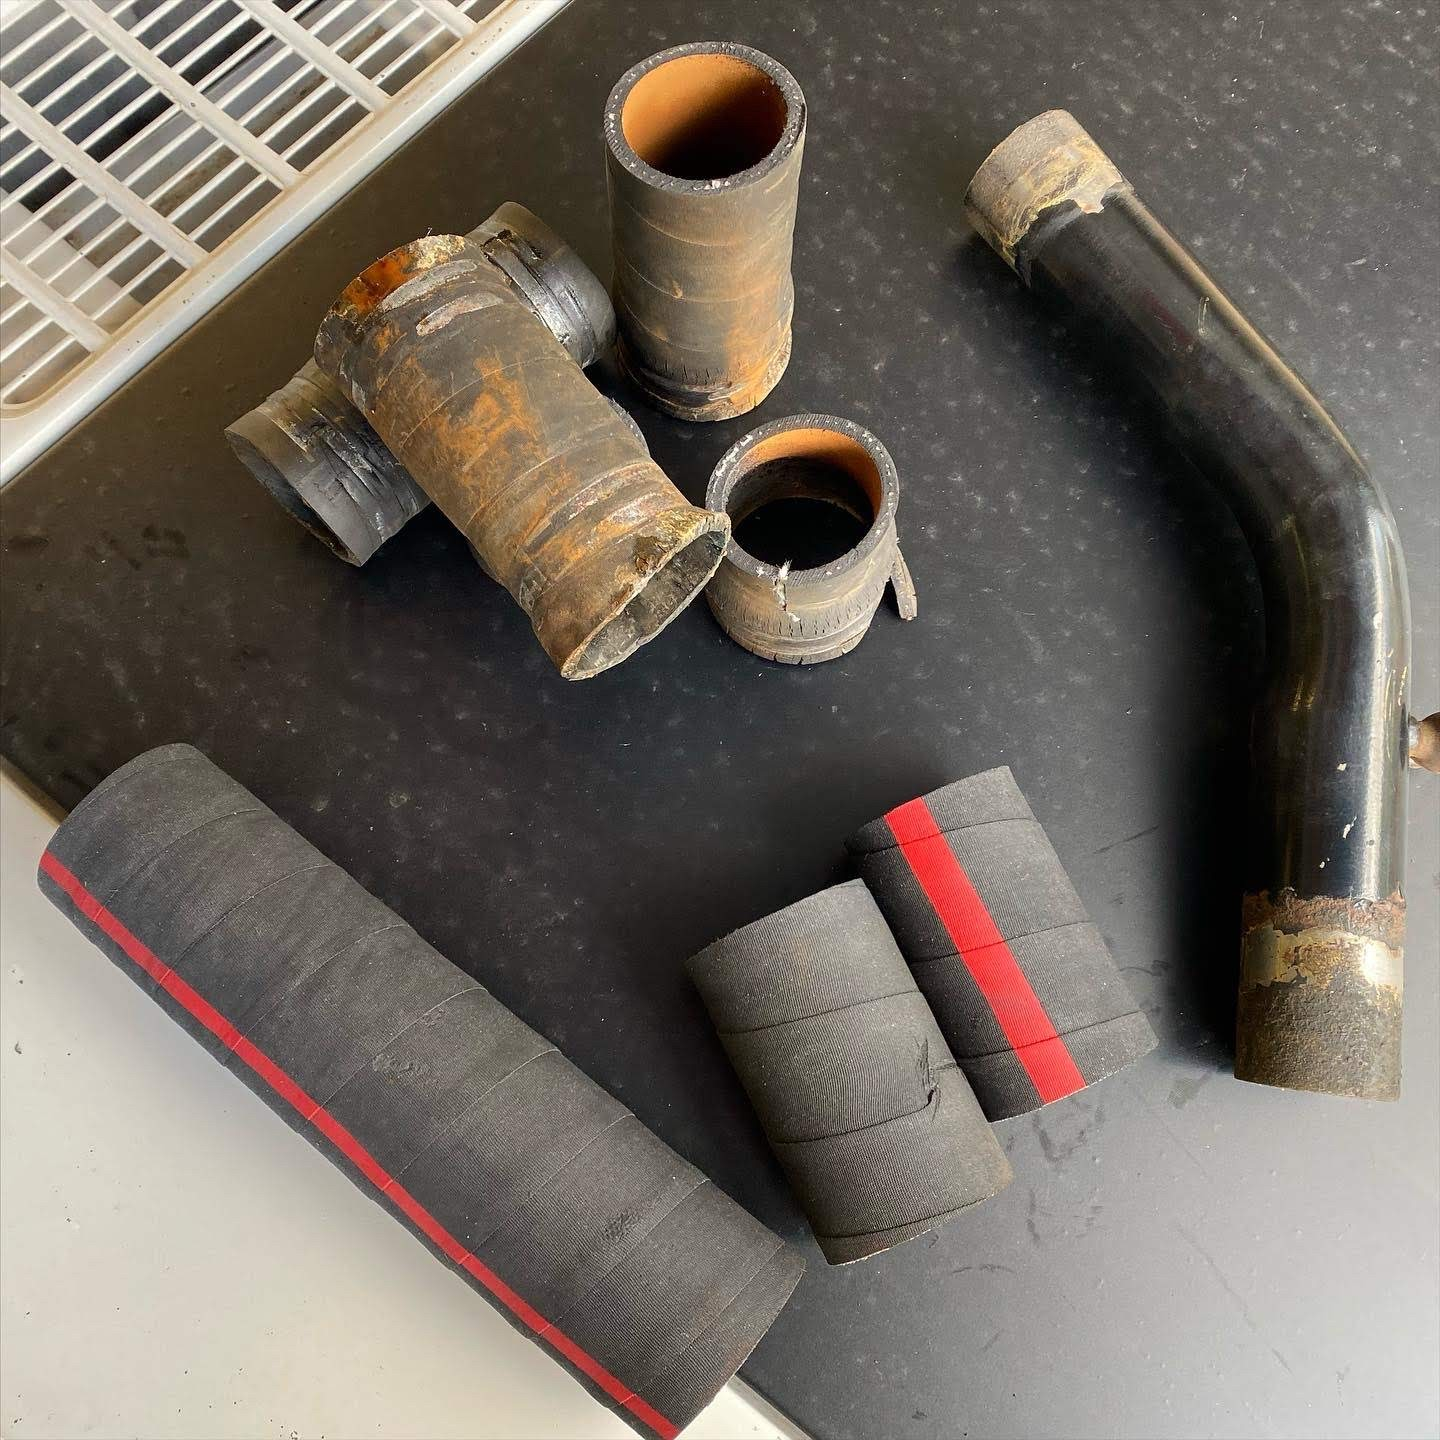 Replacing radiator hoses shouldn't require a Sawzall—but mine did